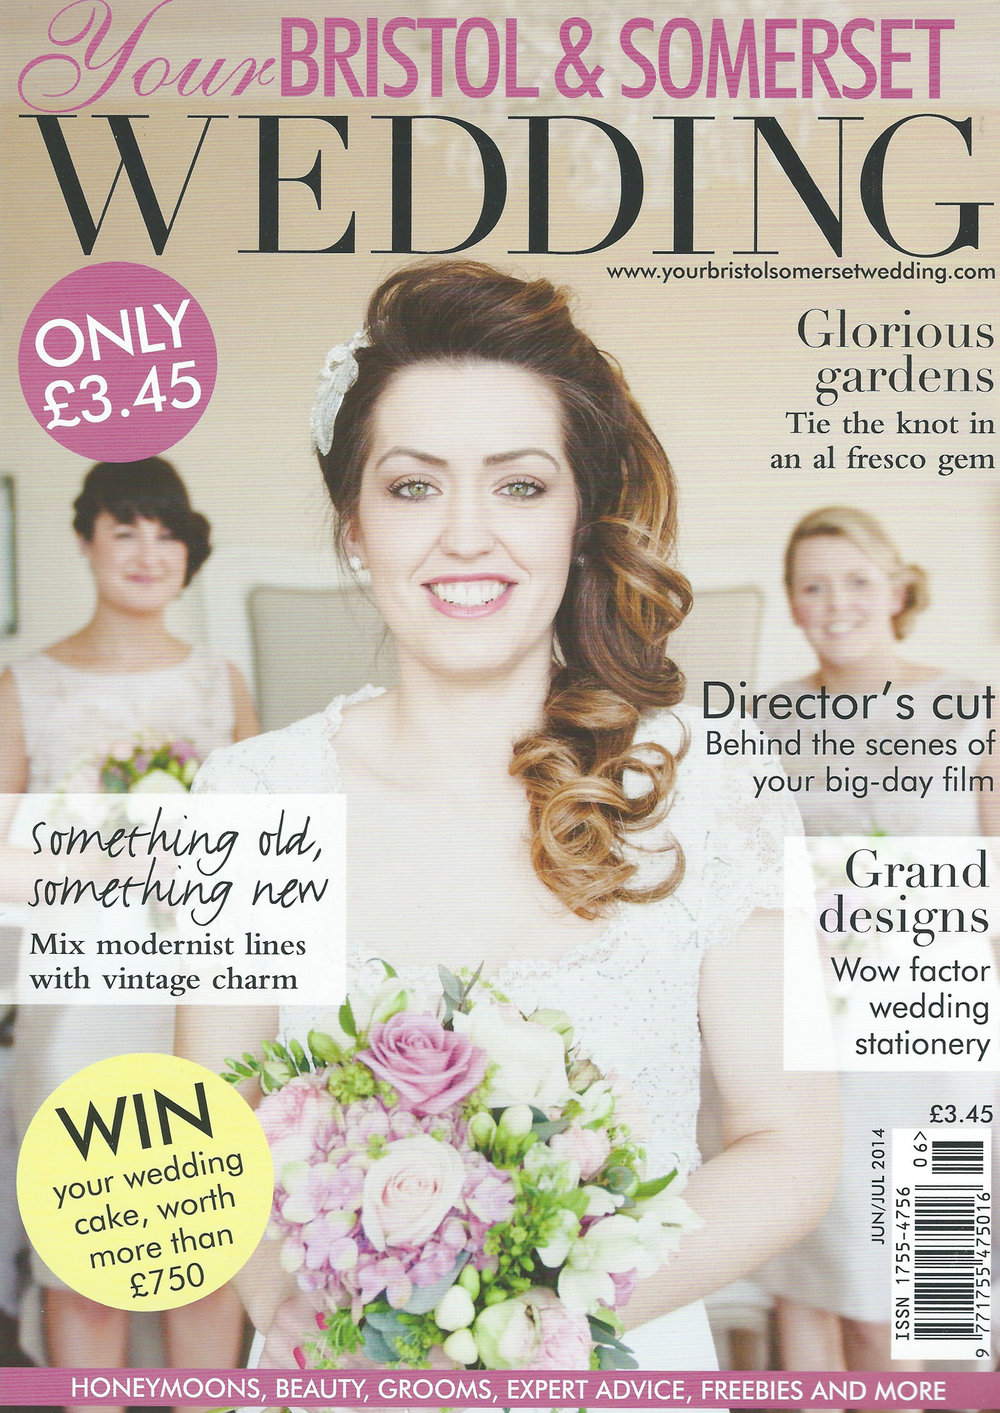 BristolSomerset_WeddingMag.jpg